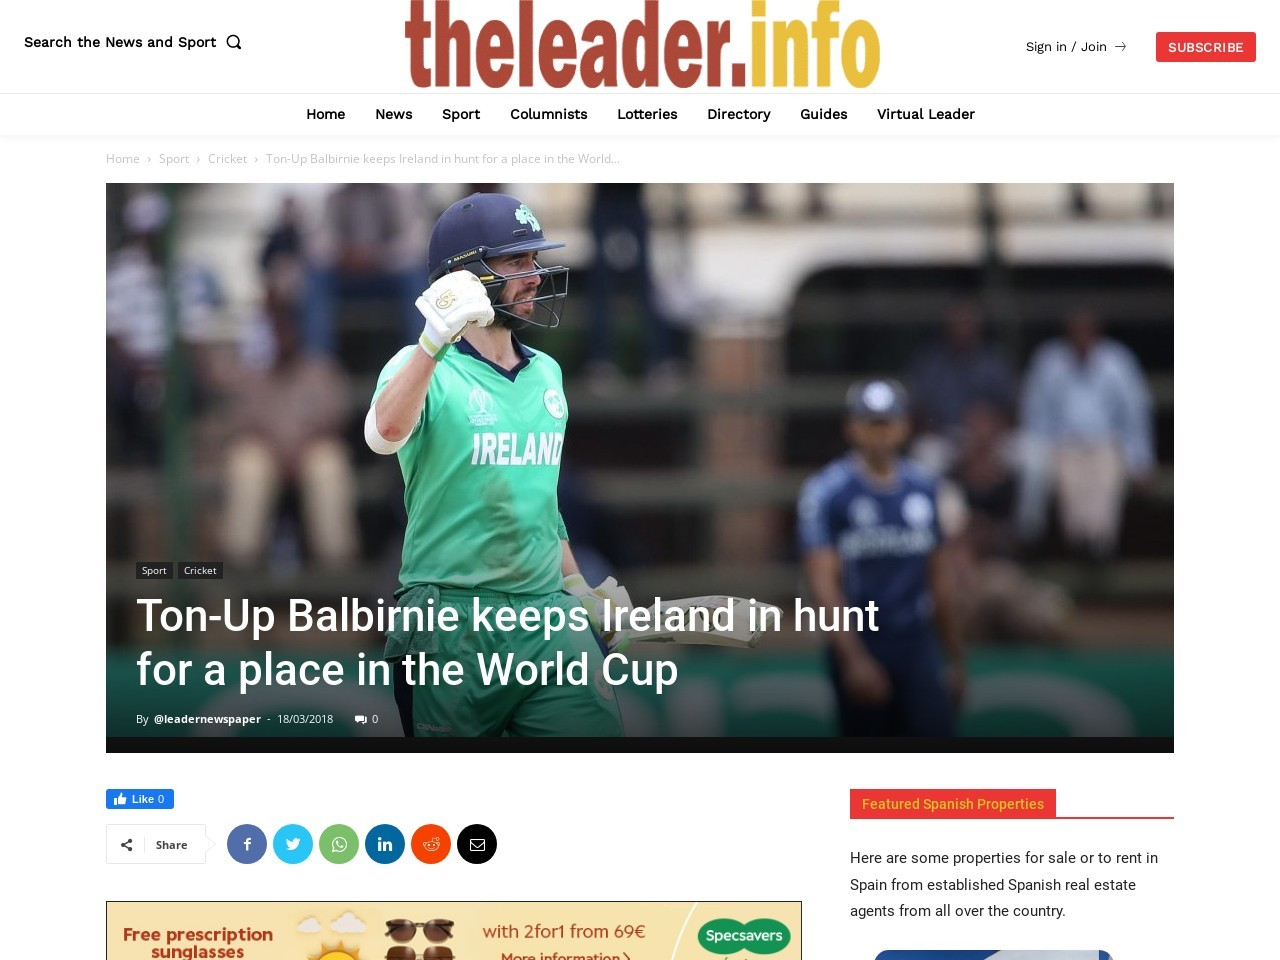 Ton-Up Balbirnie keeps Ireland in hunt for a place in the World Cup